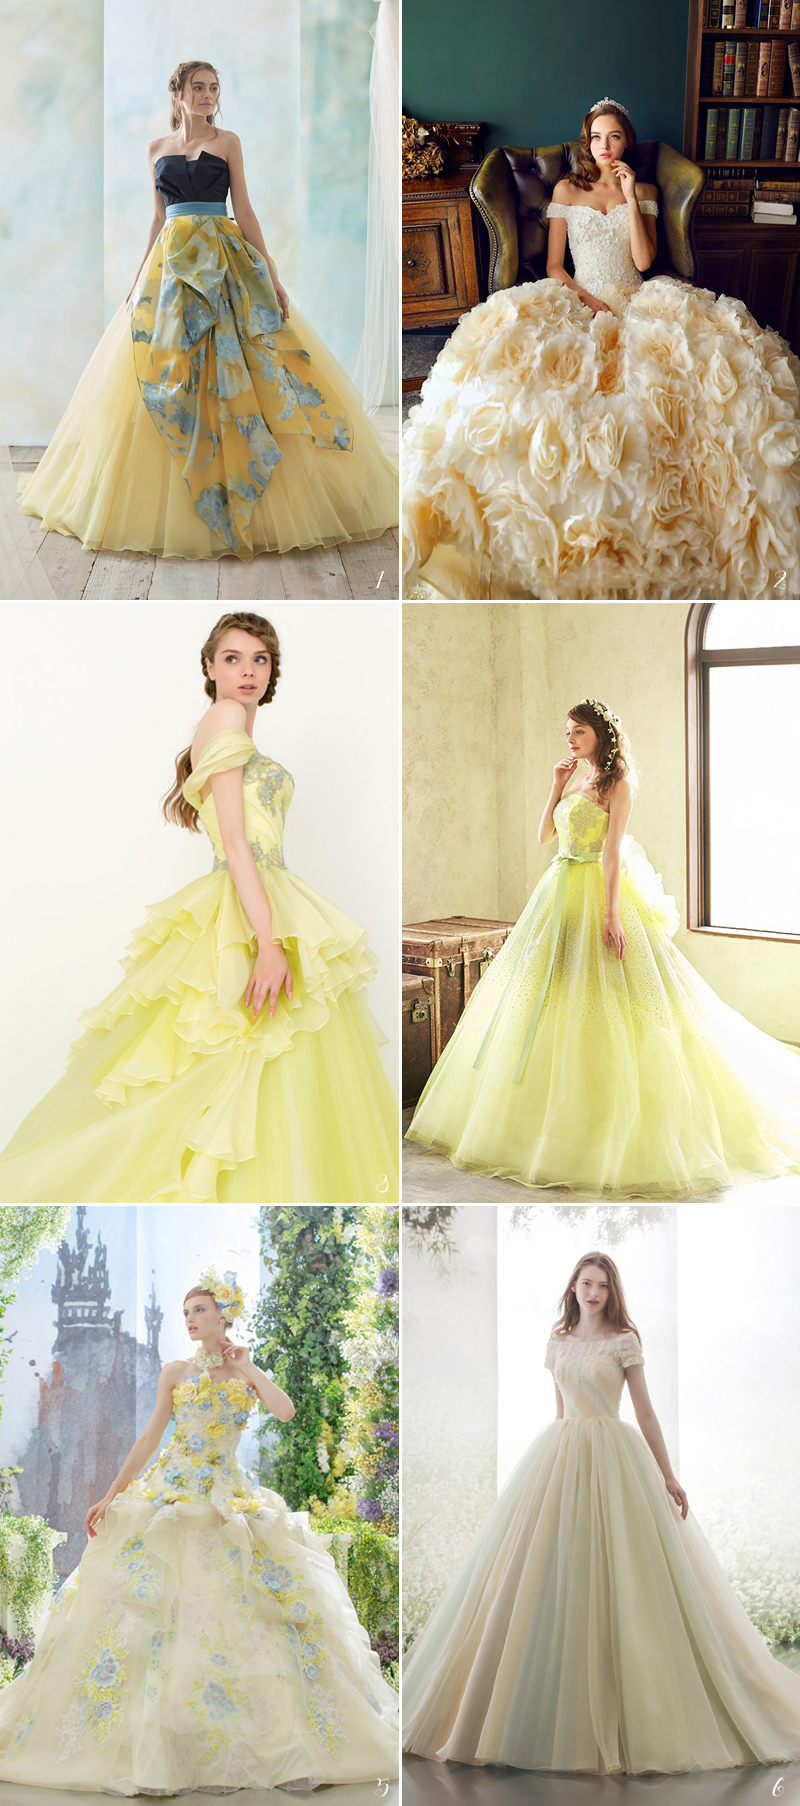 42 Fairy Tale Wedding Dresses For The Disney Princess Bride ...